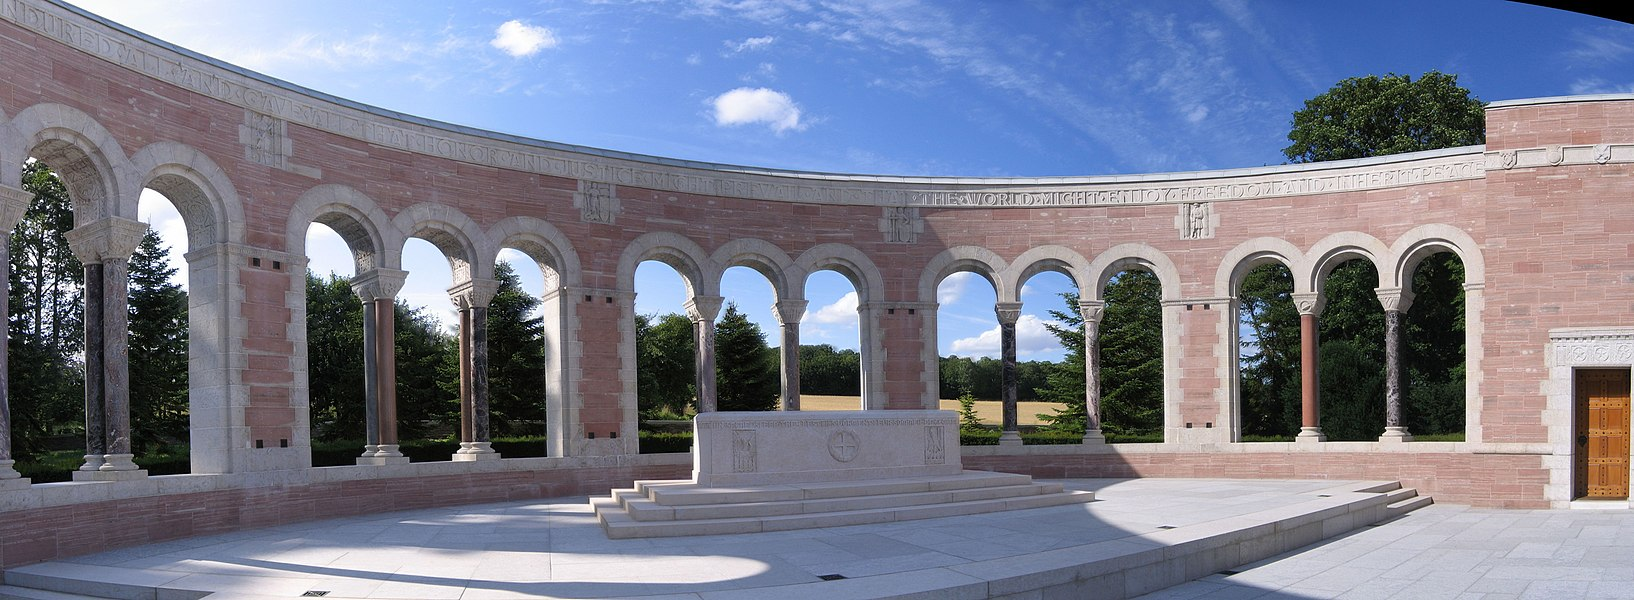 Memorial monument of Oise-Aisne American Cemetery in Seringes-et-Nesles, near Fère-en-Tardenois, France